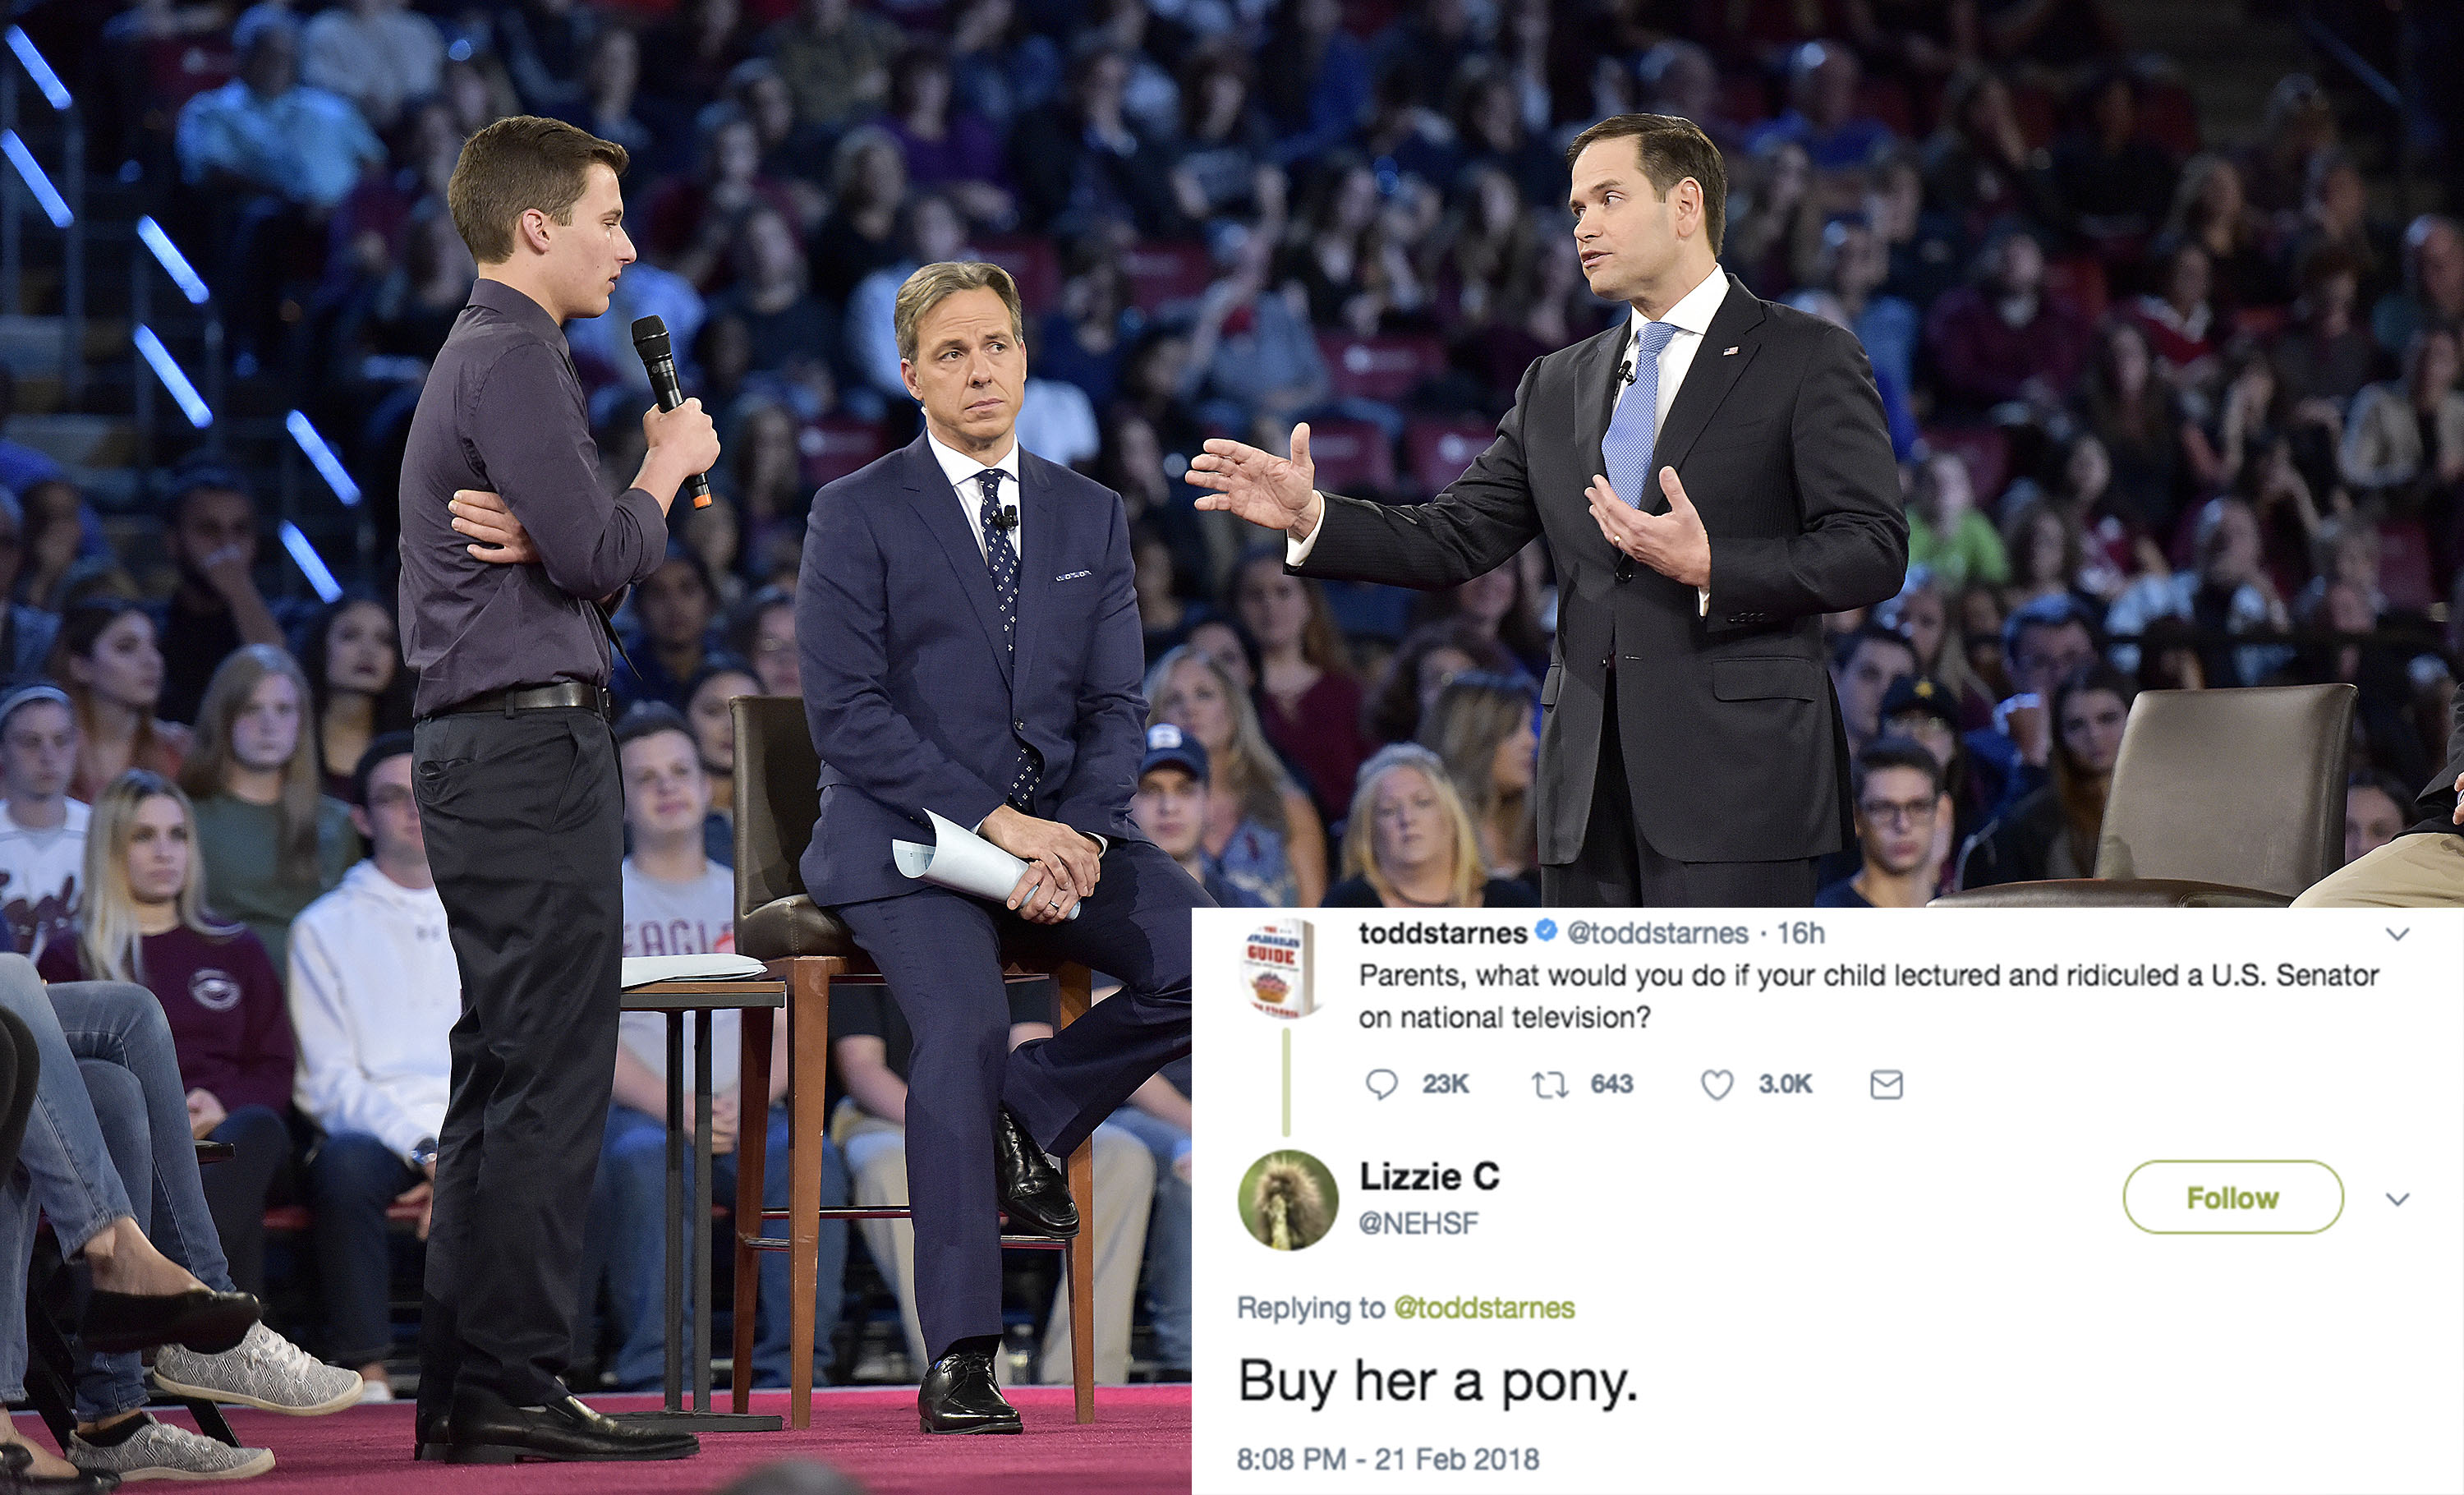 """Parents are sharing what they'd do if their kid """"ridiculed"""" Marco Rubio the way Parkland survivor Cameron Kasky did"""